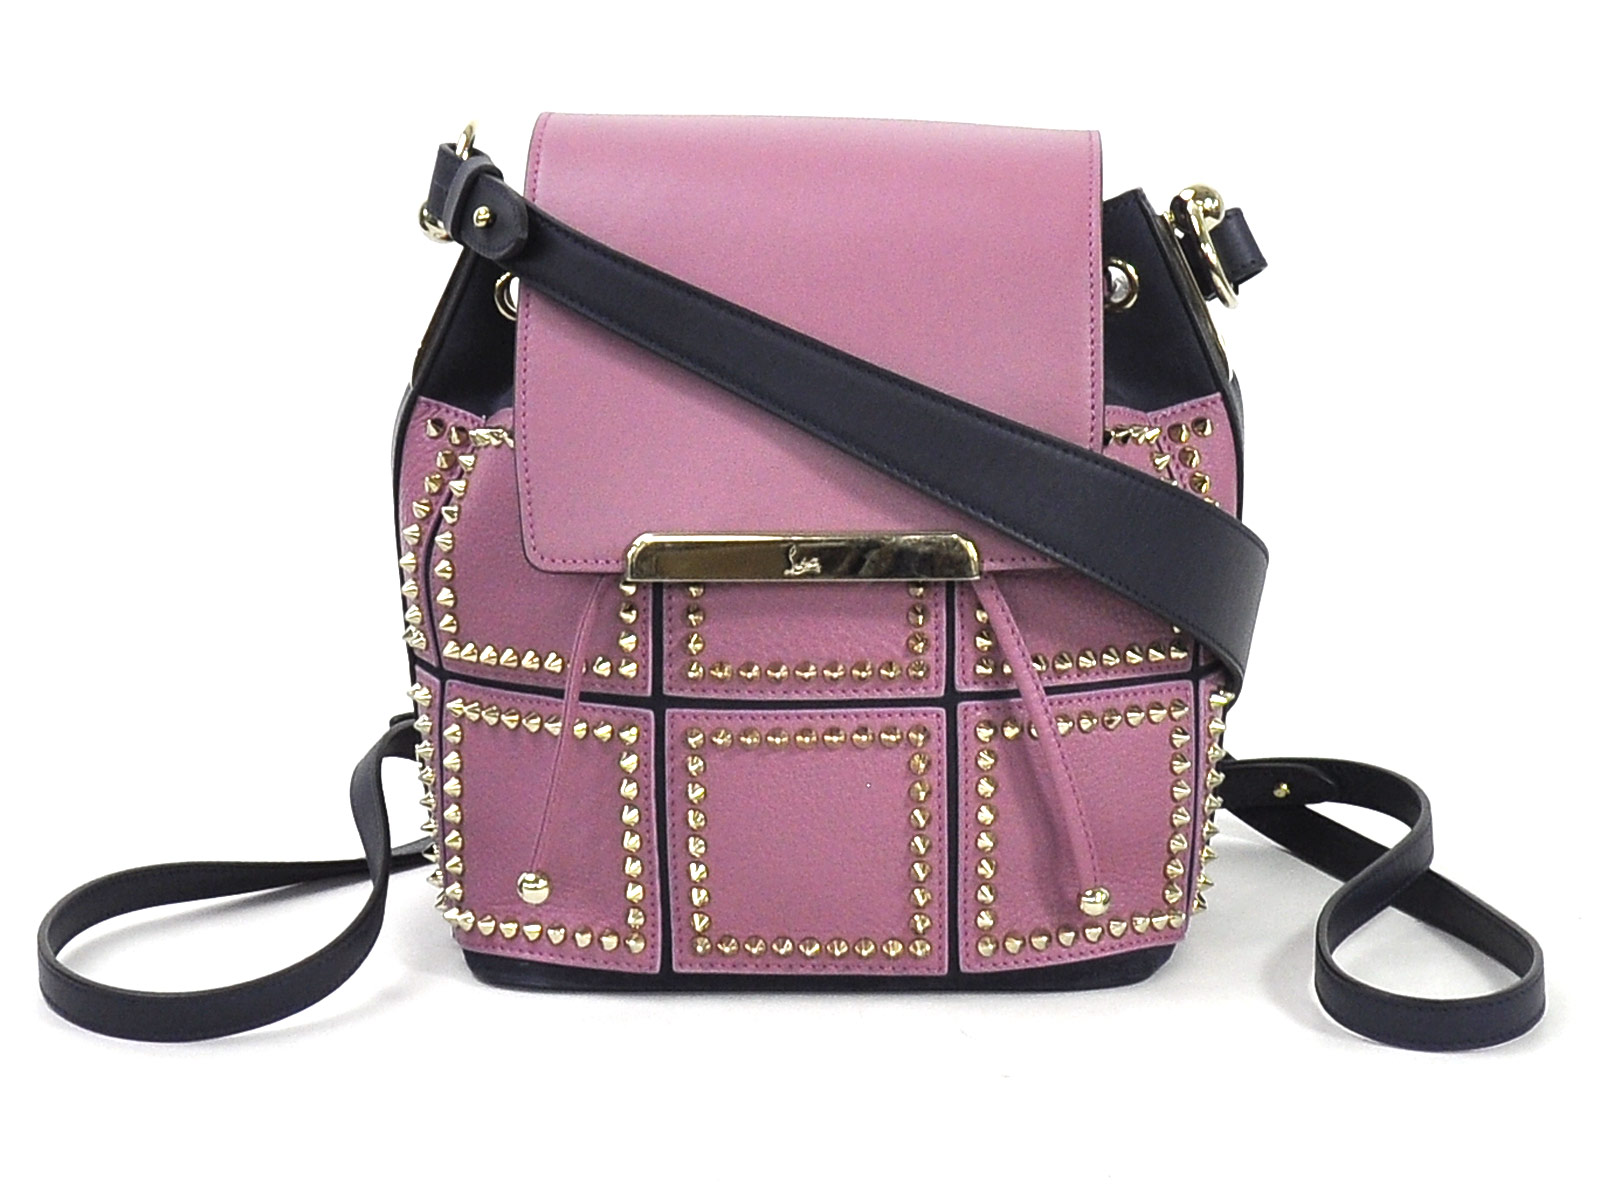 6bca47a1b03 Details about Auth Christian Louboutin Lucky L Bucket Backpack Shoulder Bag  Purple/Navy 96831